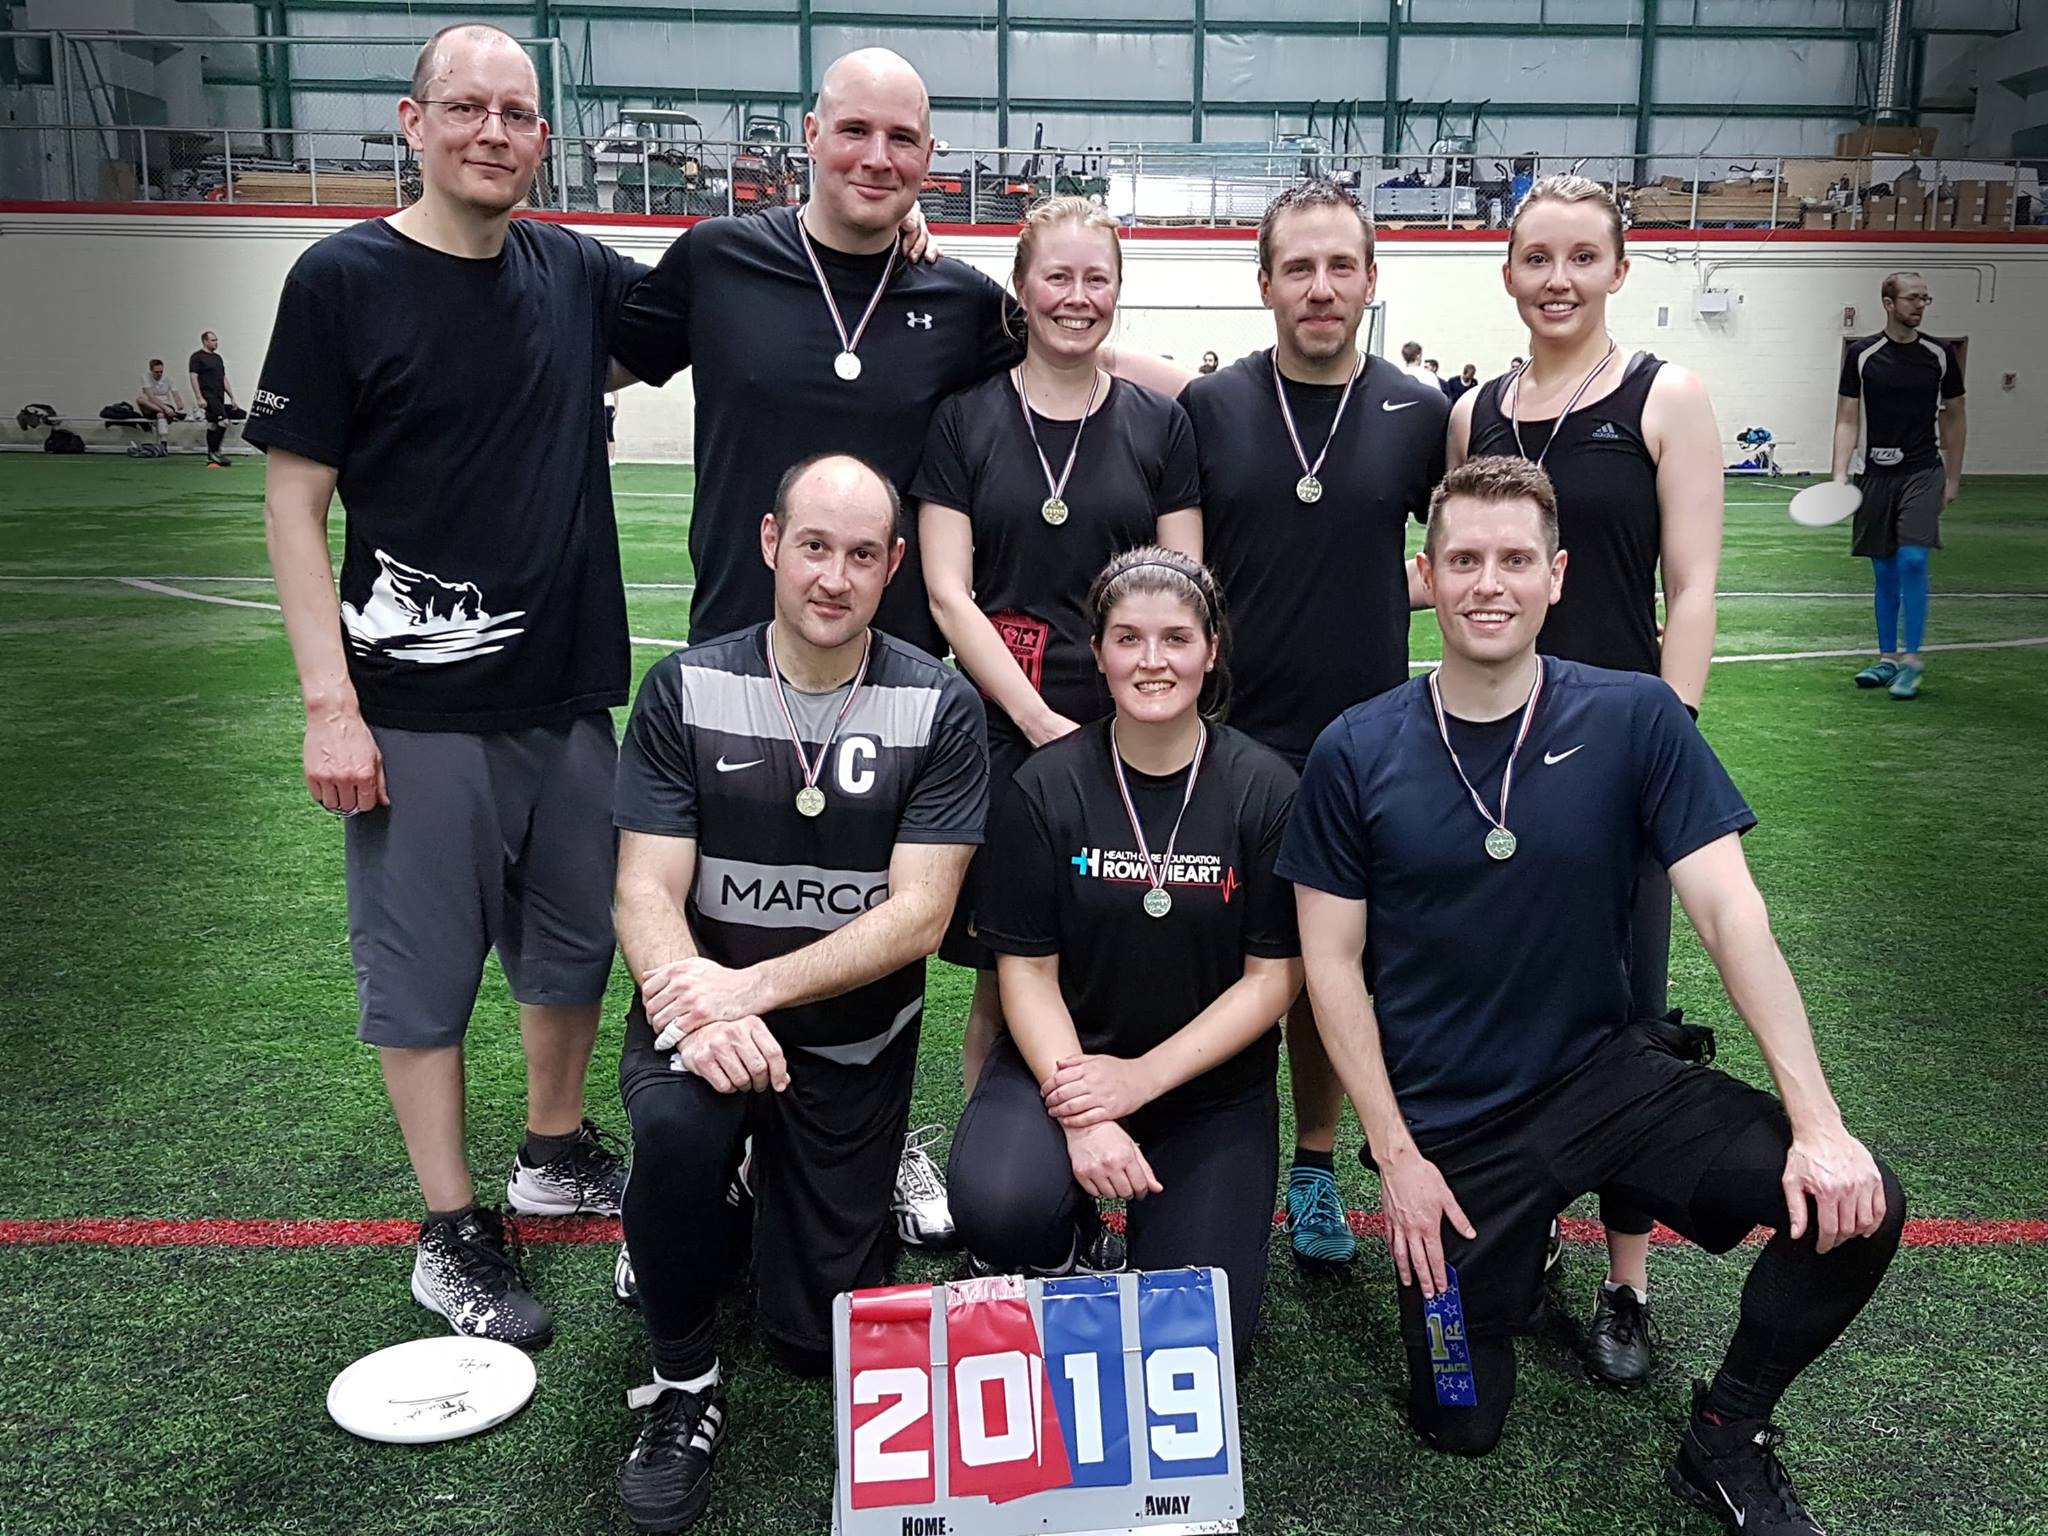 Team Buddy Wasisgame and the Other Handlers won Mile Zero Ultimate's recent toque league.